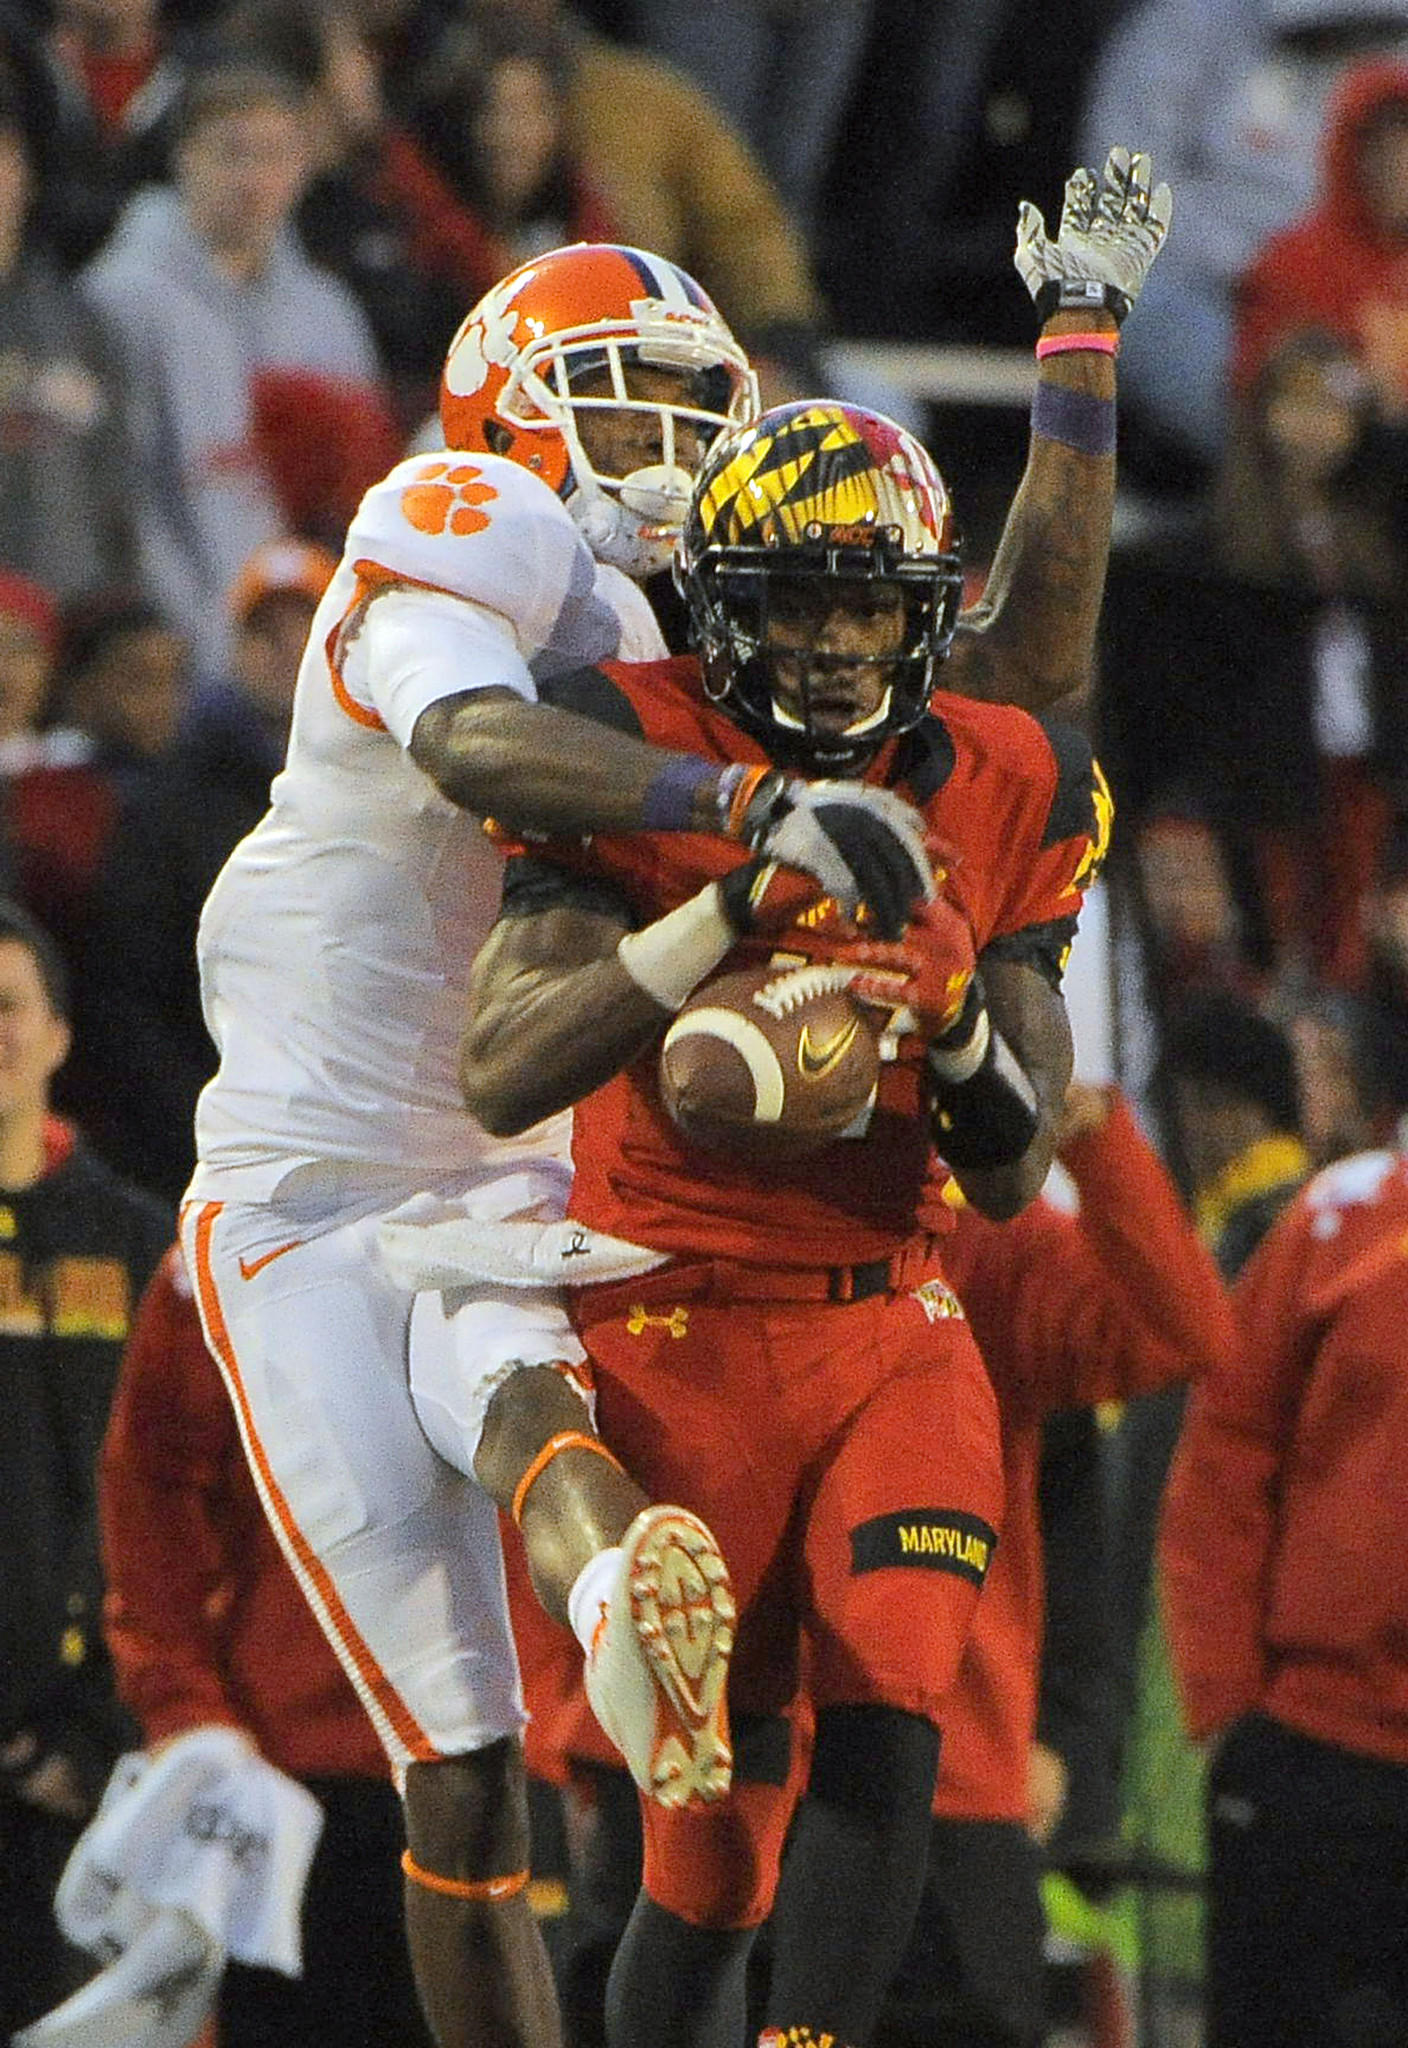 Maryland Terrapins defensive back Isaac Goins is in position to make a crucial interception but fails to maintain possession of the ball as Clemson Tigers wide receiver Martavis Bryant slaps it down during the fourth quarter at Byrd Stadium Saturday, Oct. 26, 2013.